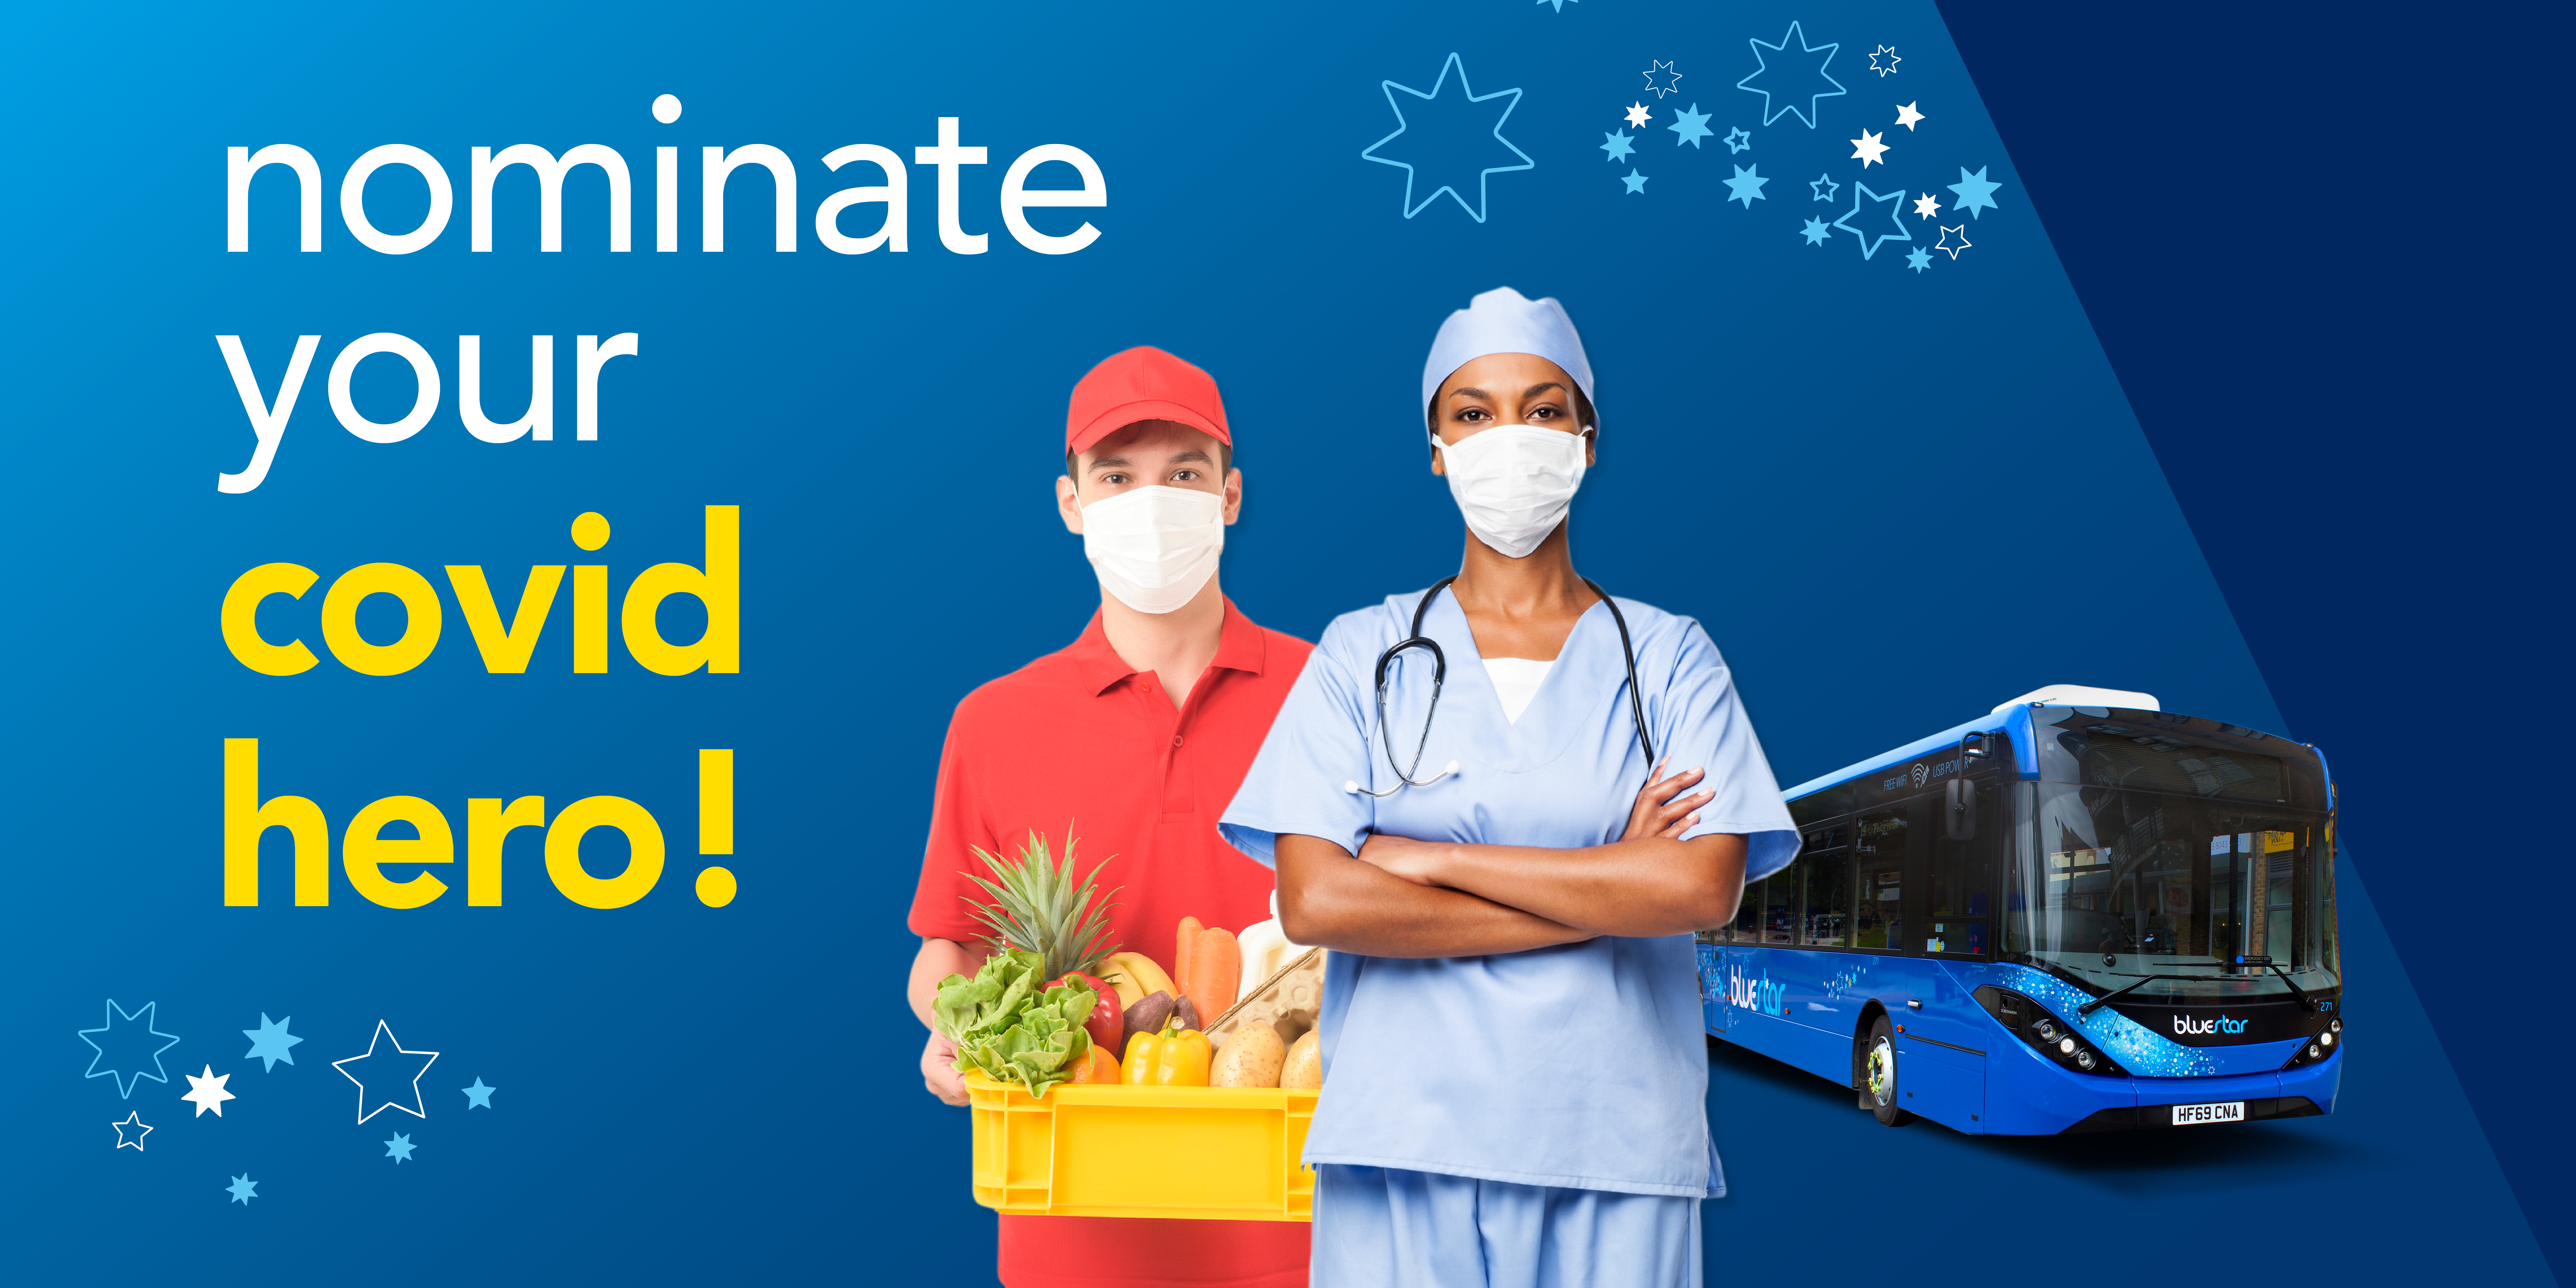 Image of a bluestar bus with a nurse and food delivery personnel with text reading, 'nominate your covid hero!'